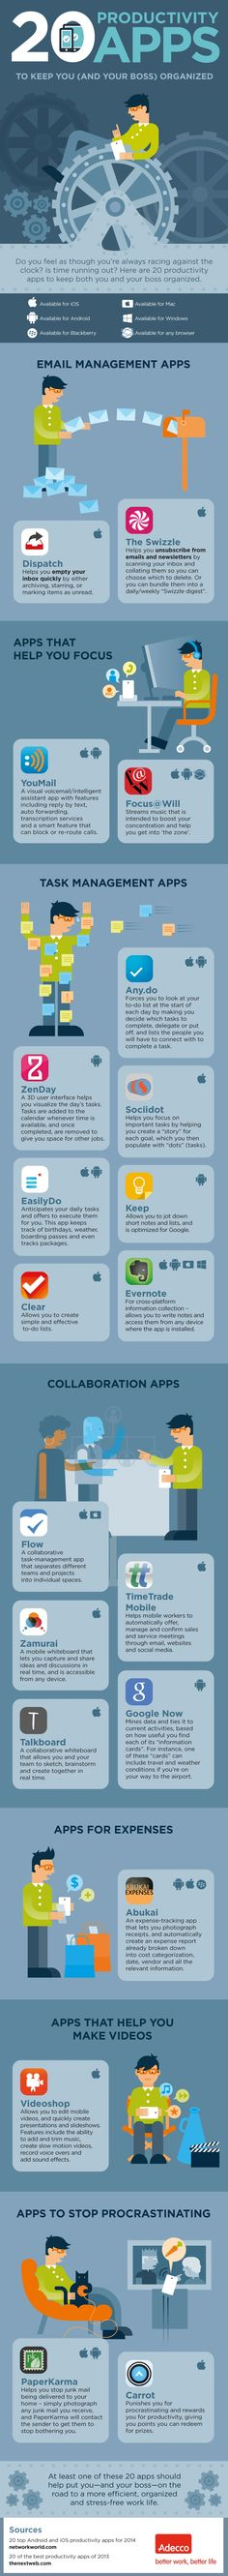 20 Productivity Apps To Keep You (And Your Boss) Organized  #infographic #Productivity #Apps #Workplace